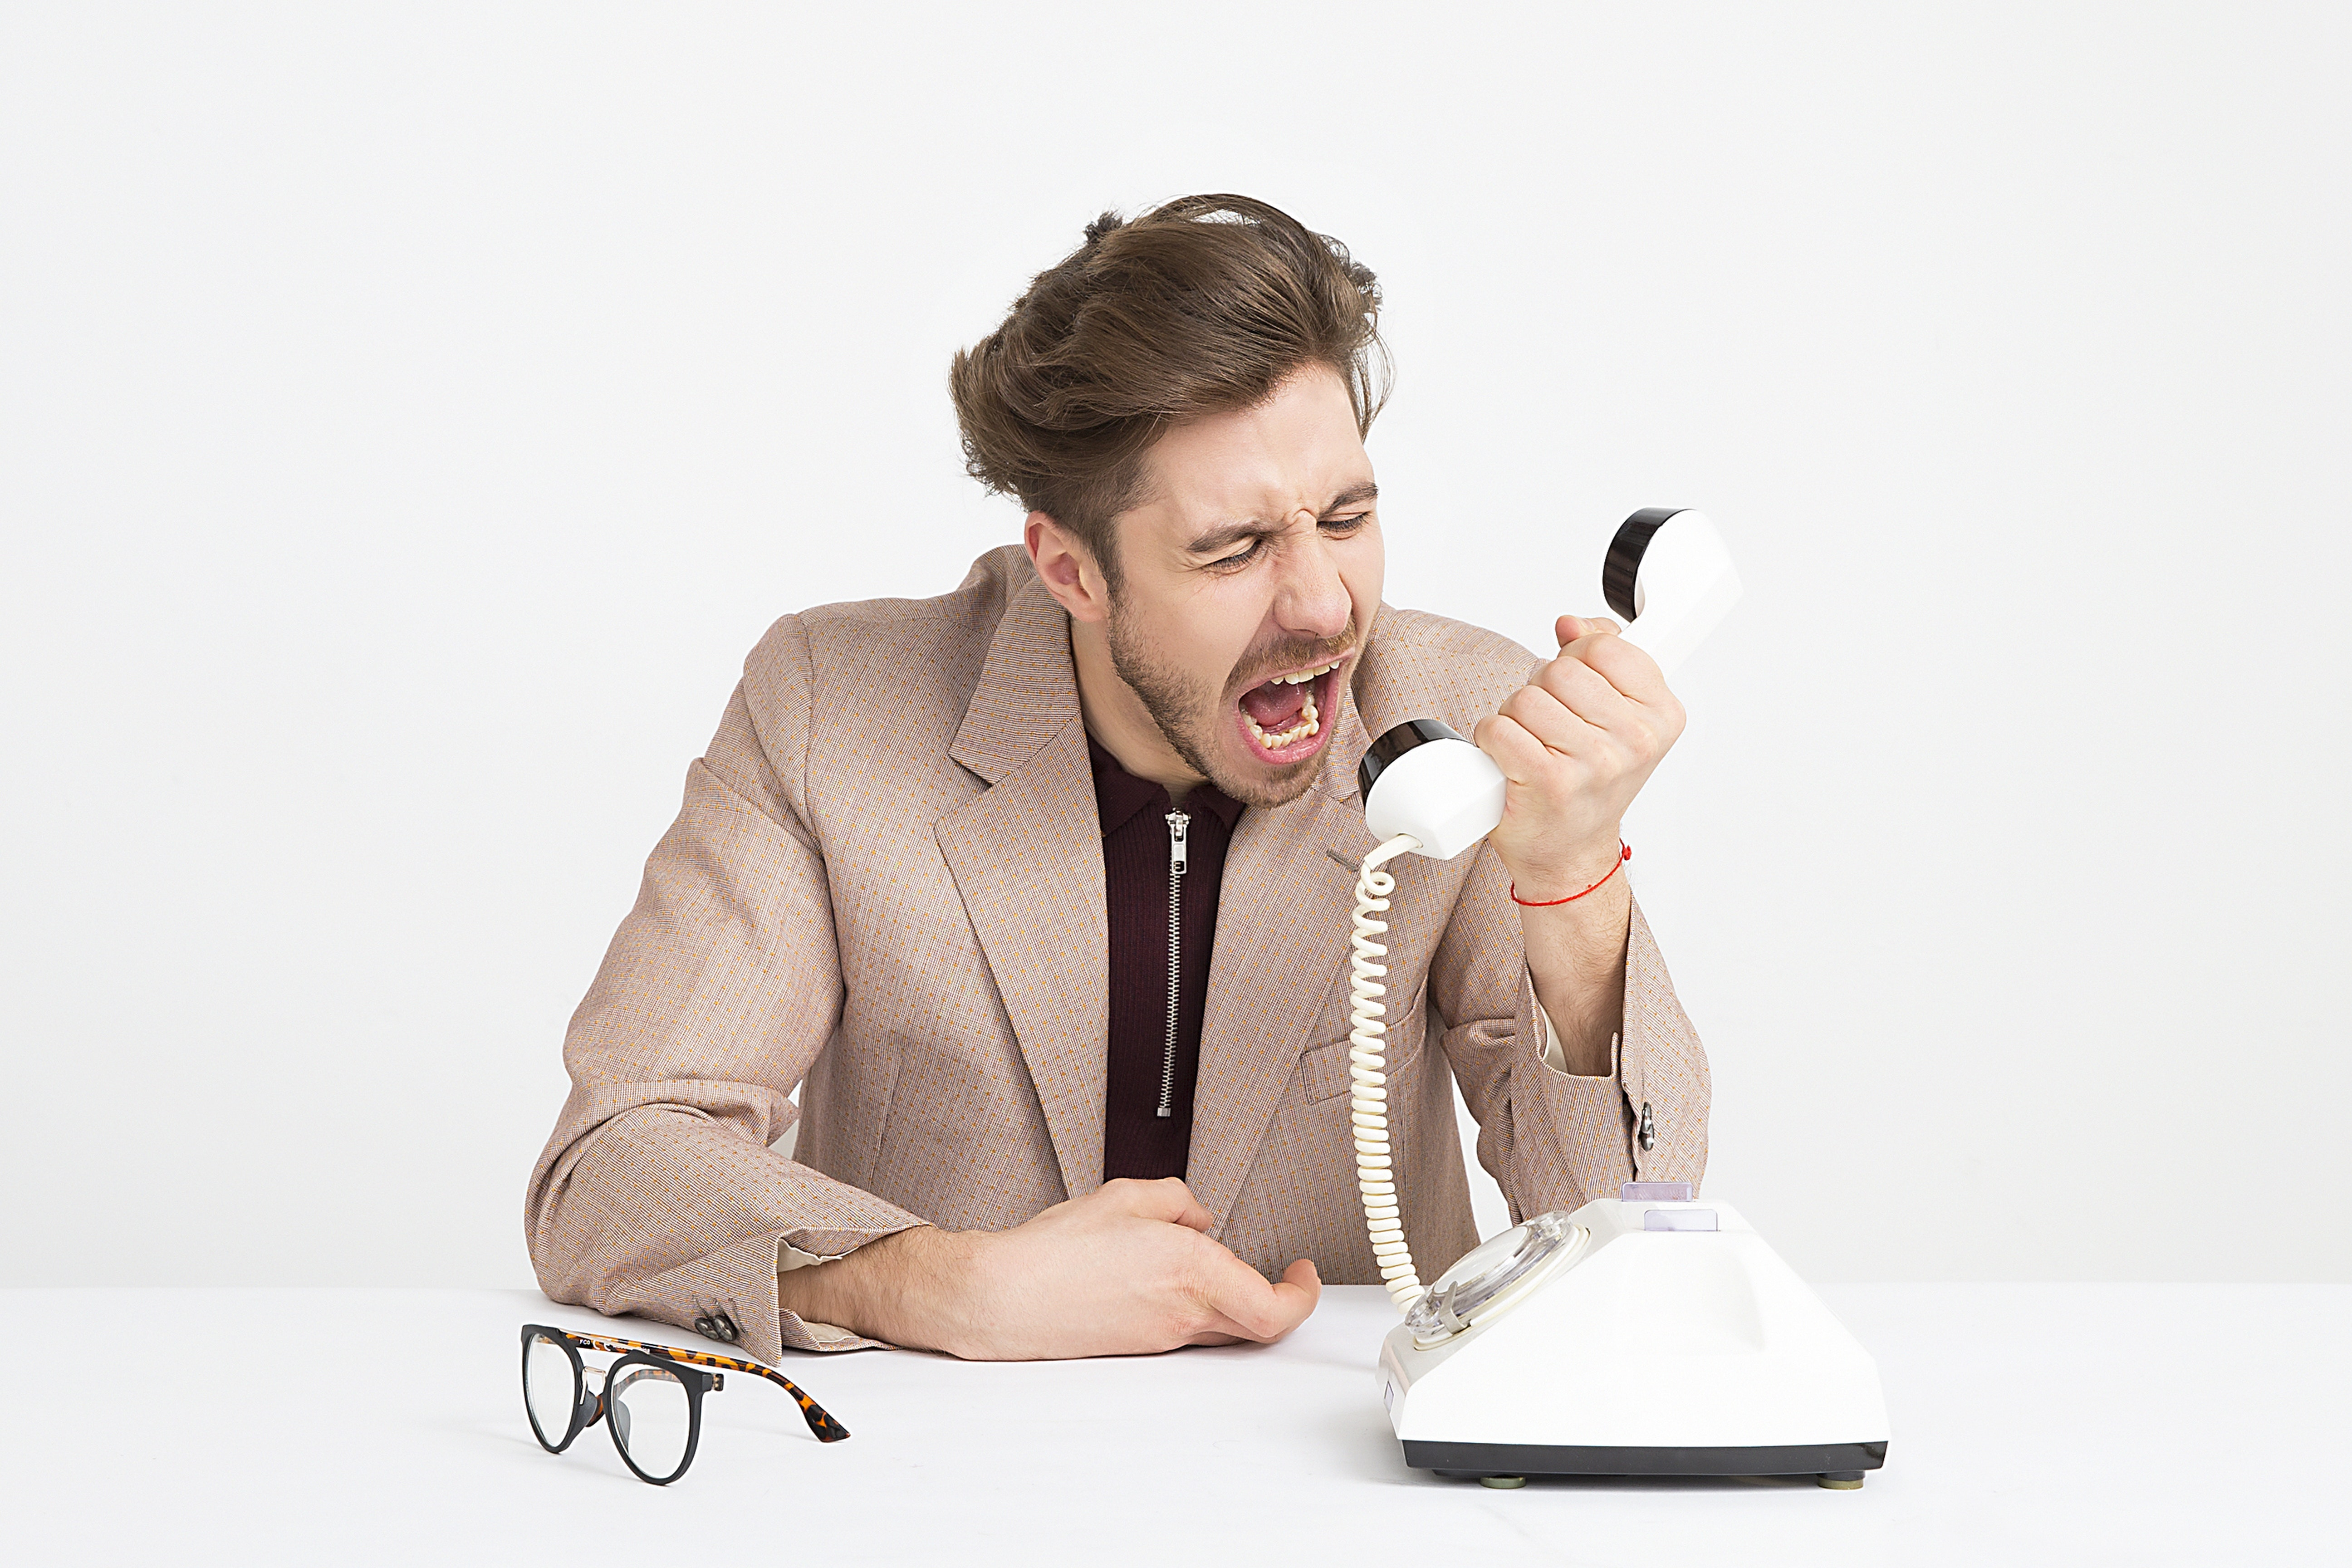 Young man in brown suit yelling into a rotary phone.